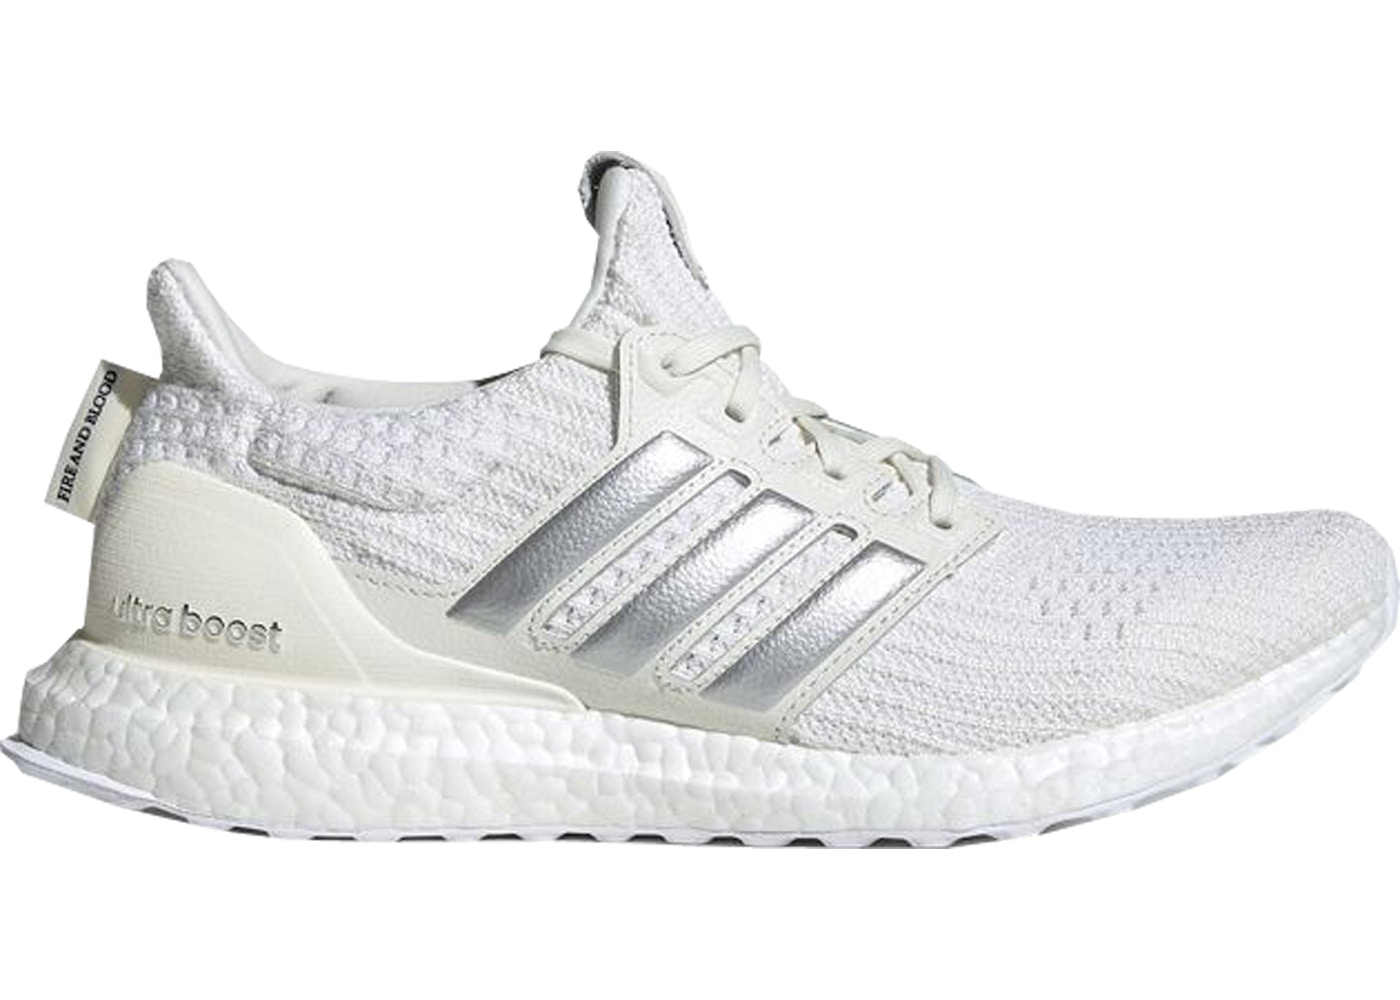 half off 8991d 732c3 adidas Ultra Boost 4.0 Game of Thrones House Targaryen White